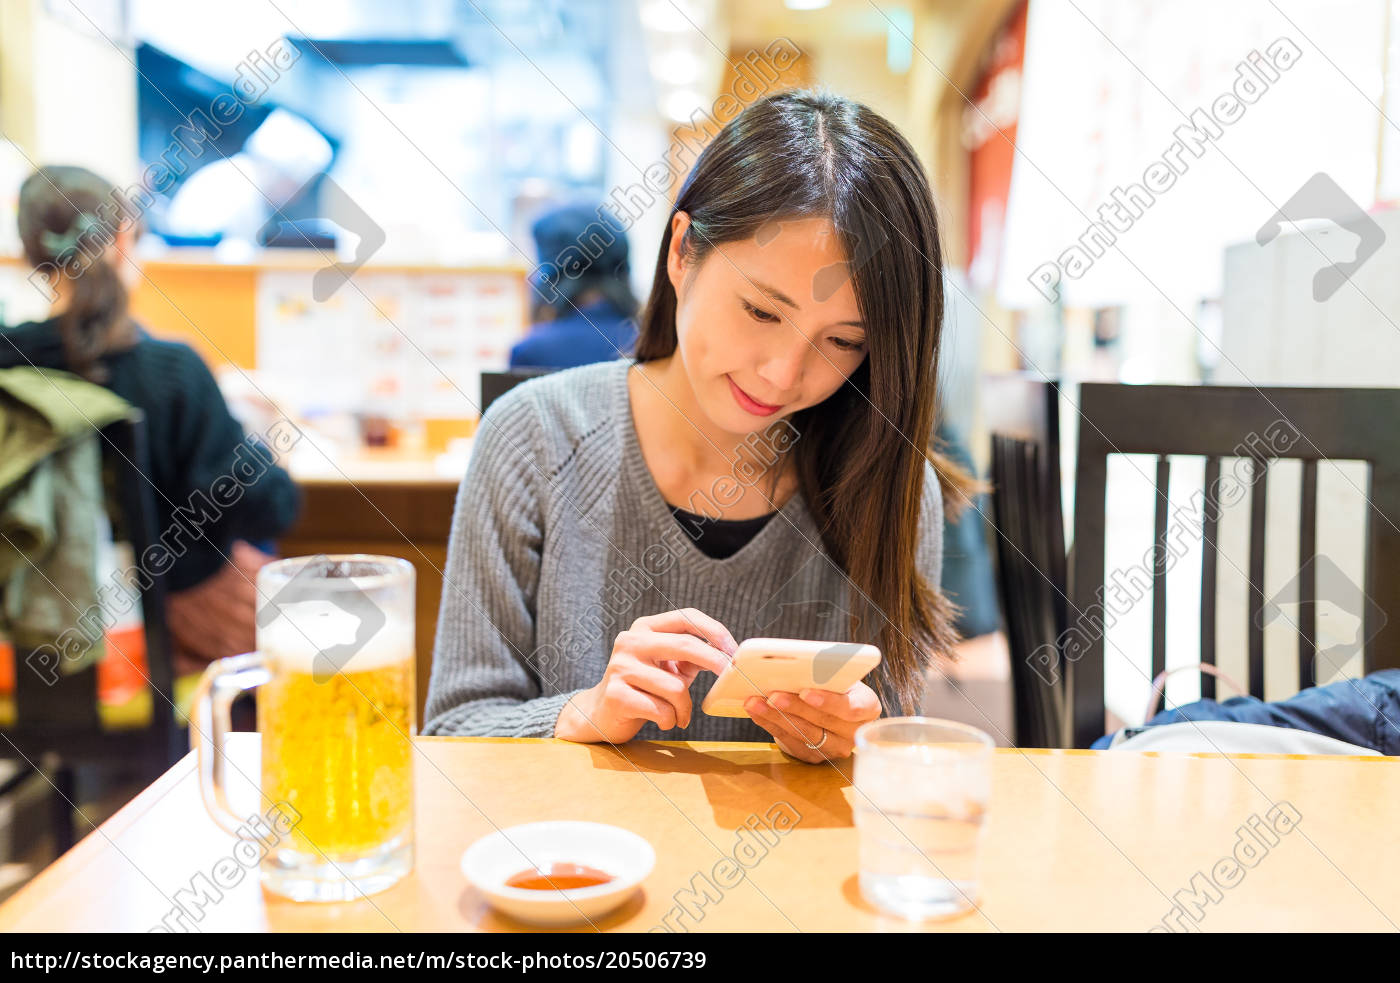 woman, use, of, cellphone, in, restaurant - 20506739